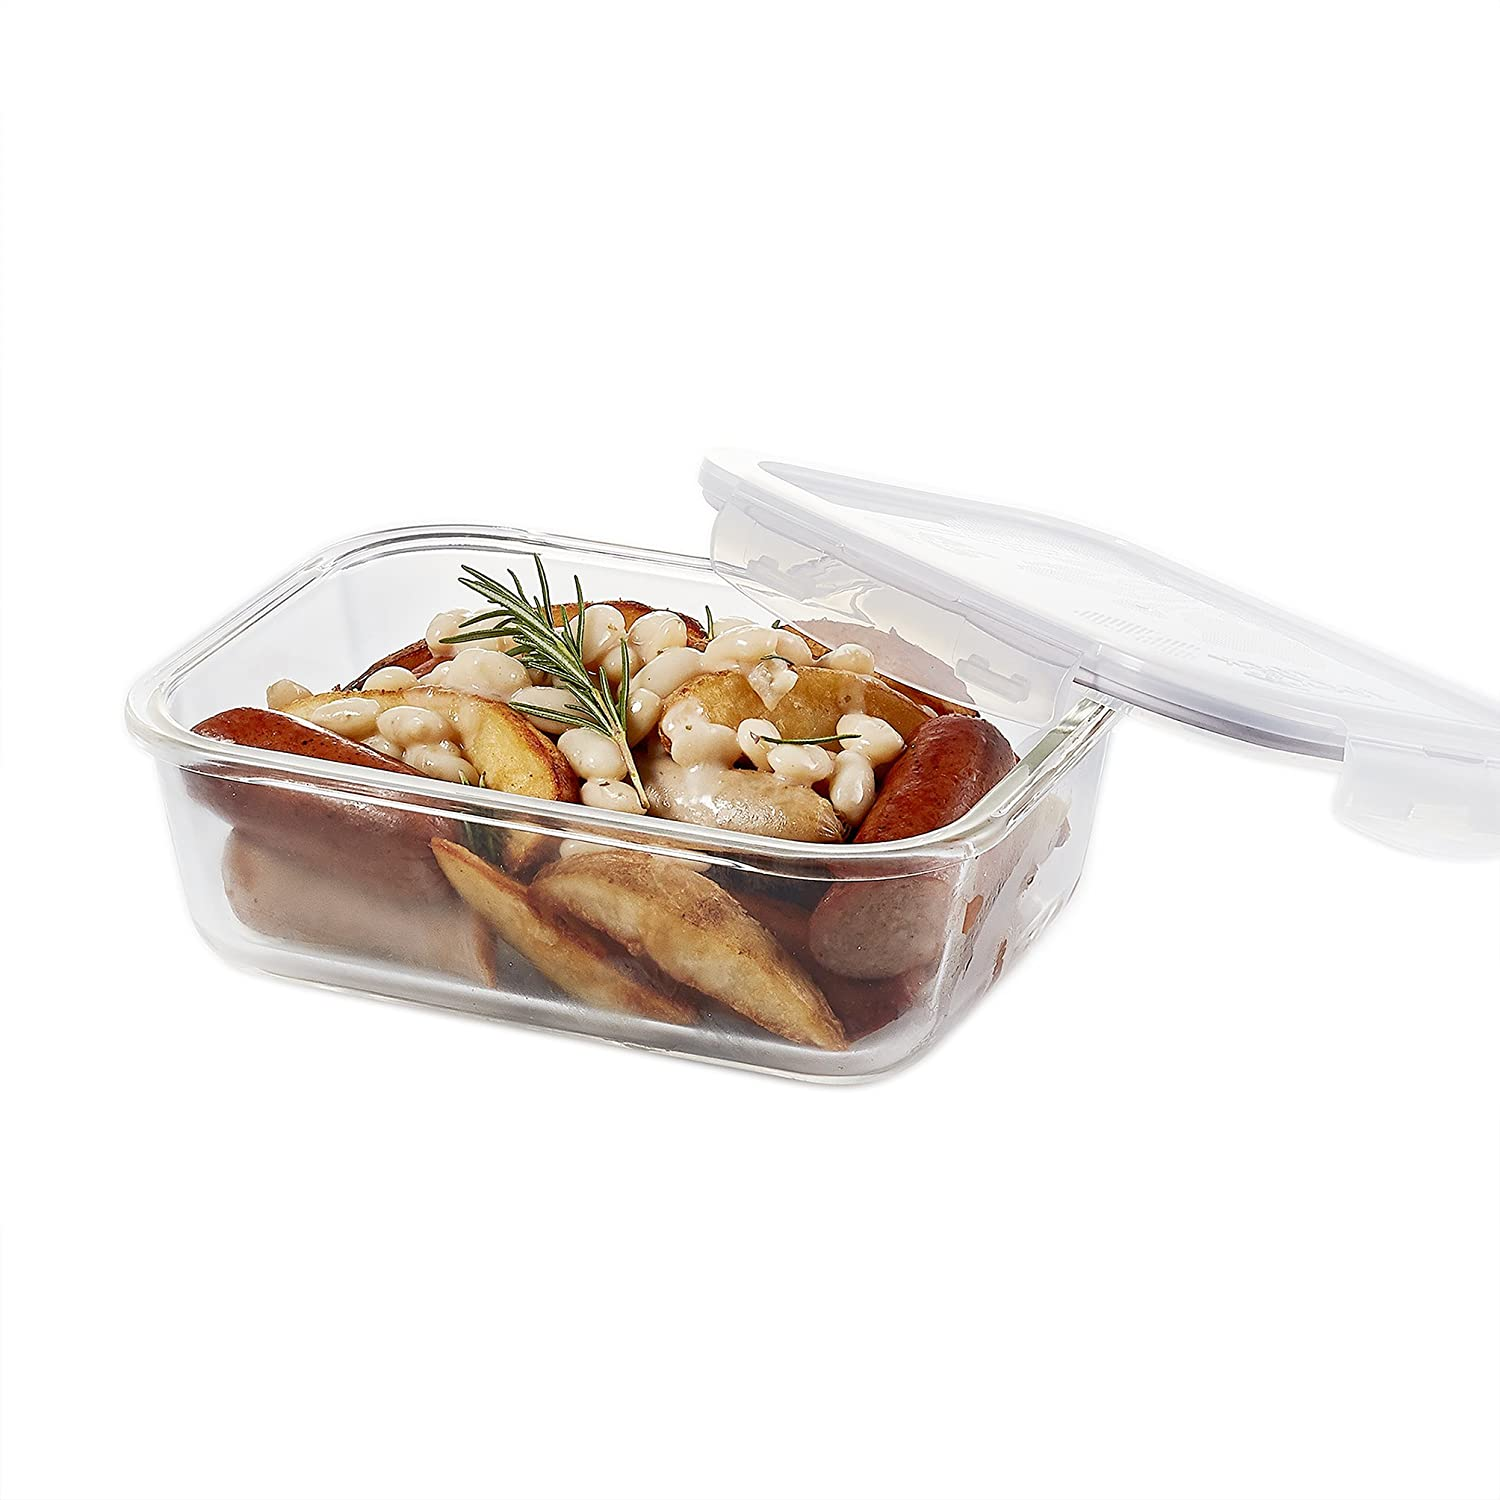 Lock & Lock Ovenglass Airtight Heat Resistant Glass Rectangular Food Storage Container (4.23-Cup)